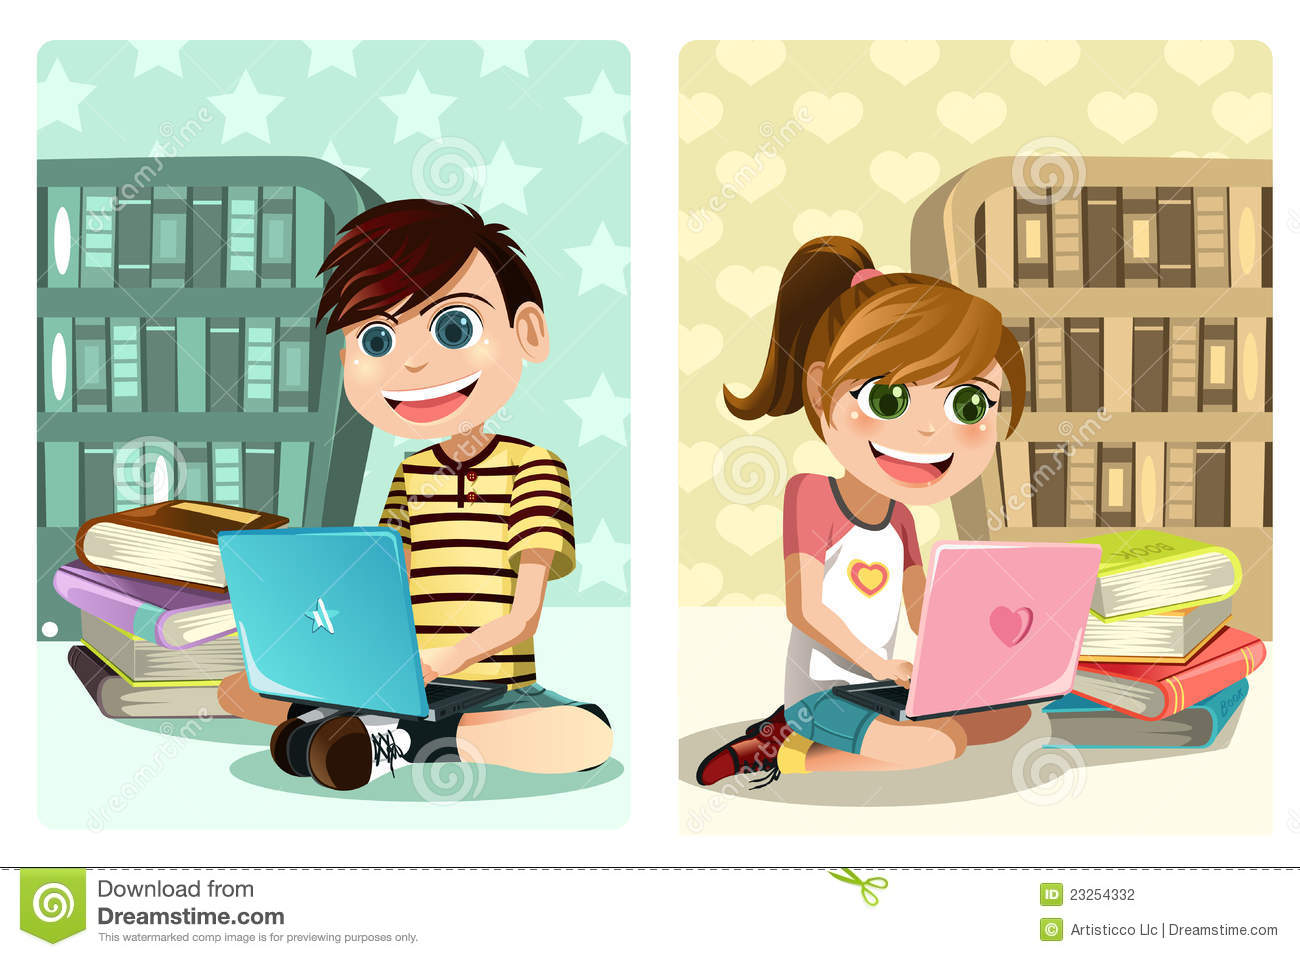 360 furthermore Touchdown further Stock Photography Kids Studying Using Laptop Image23254332 also 5270 Sogni Ossessioni Spazzatura Mente also Desert. on cartoon trash can